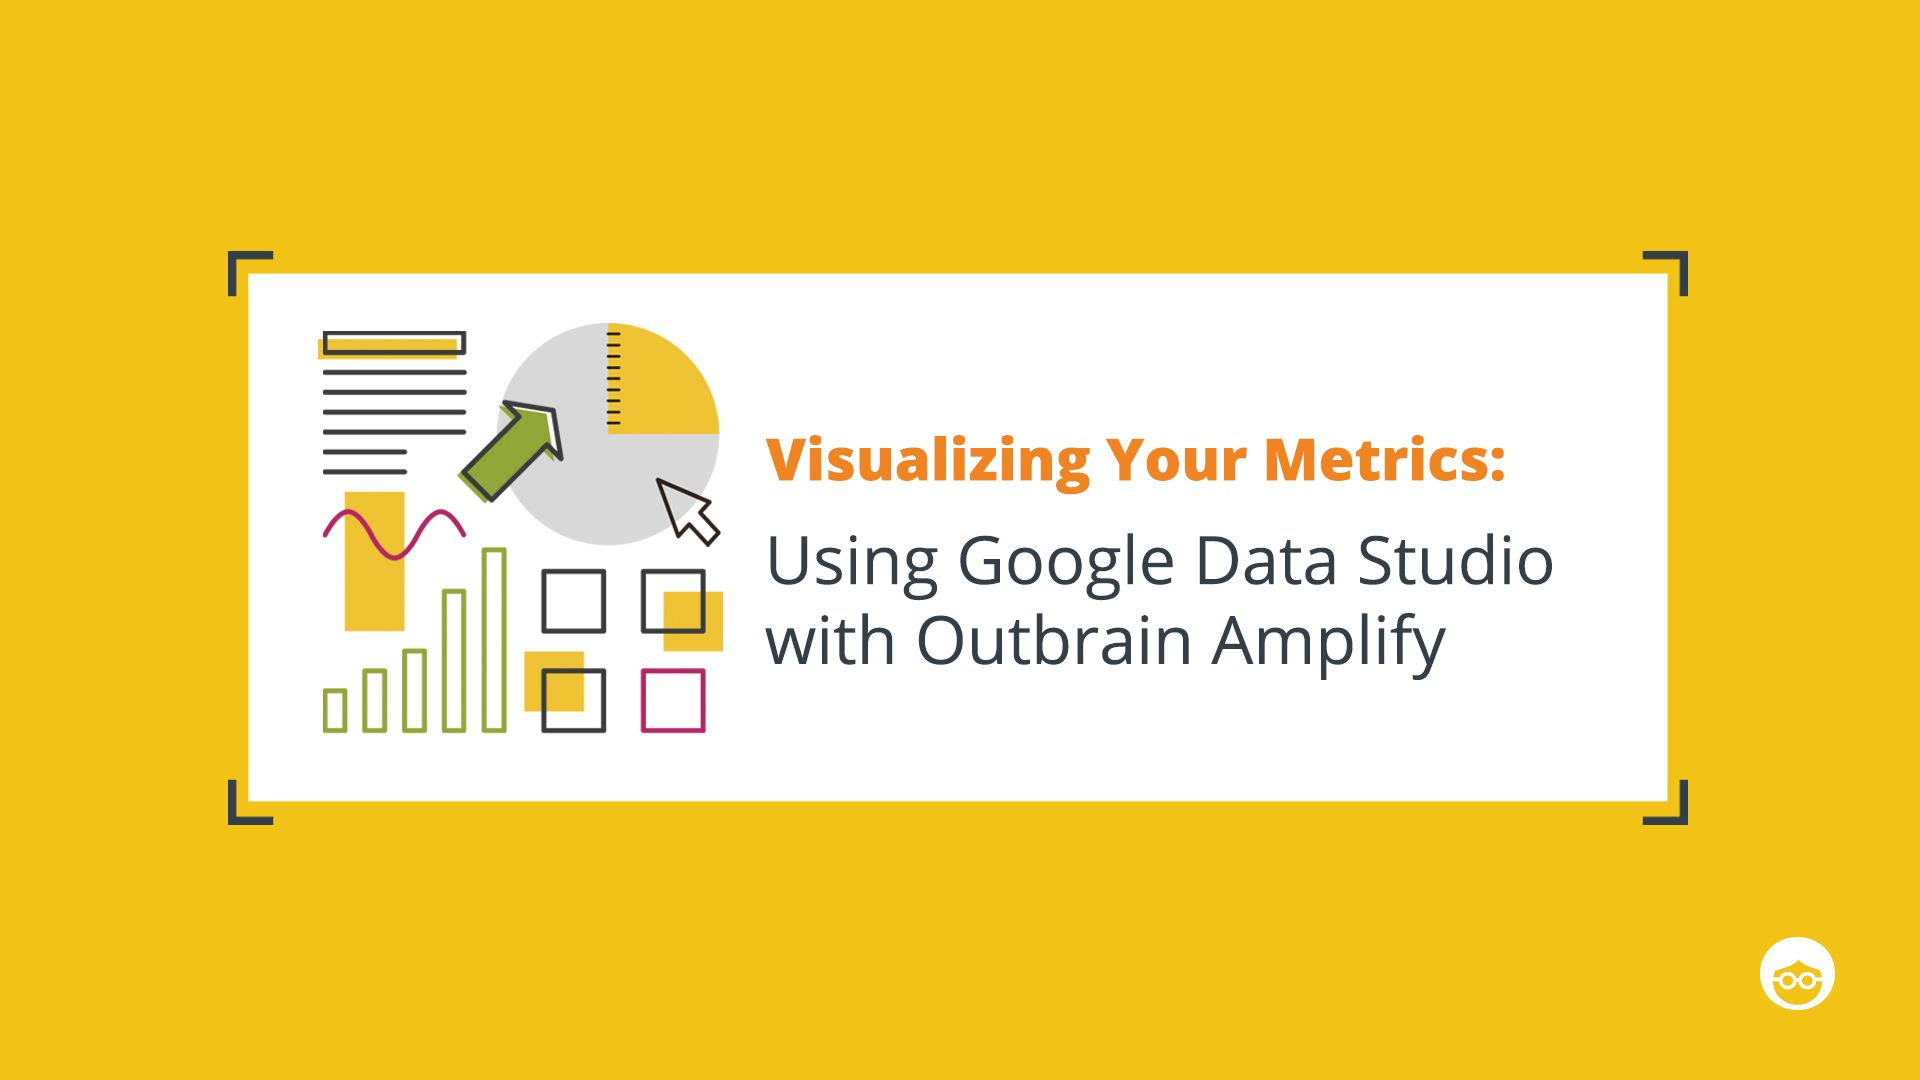 Using Google Data Studio with Outbrain Amplify